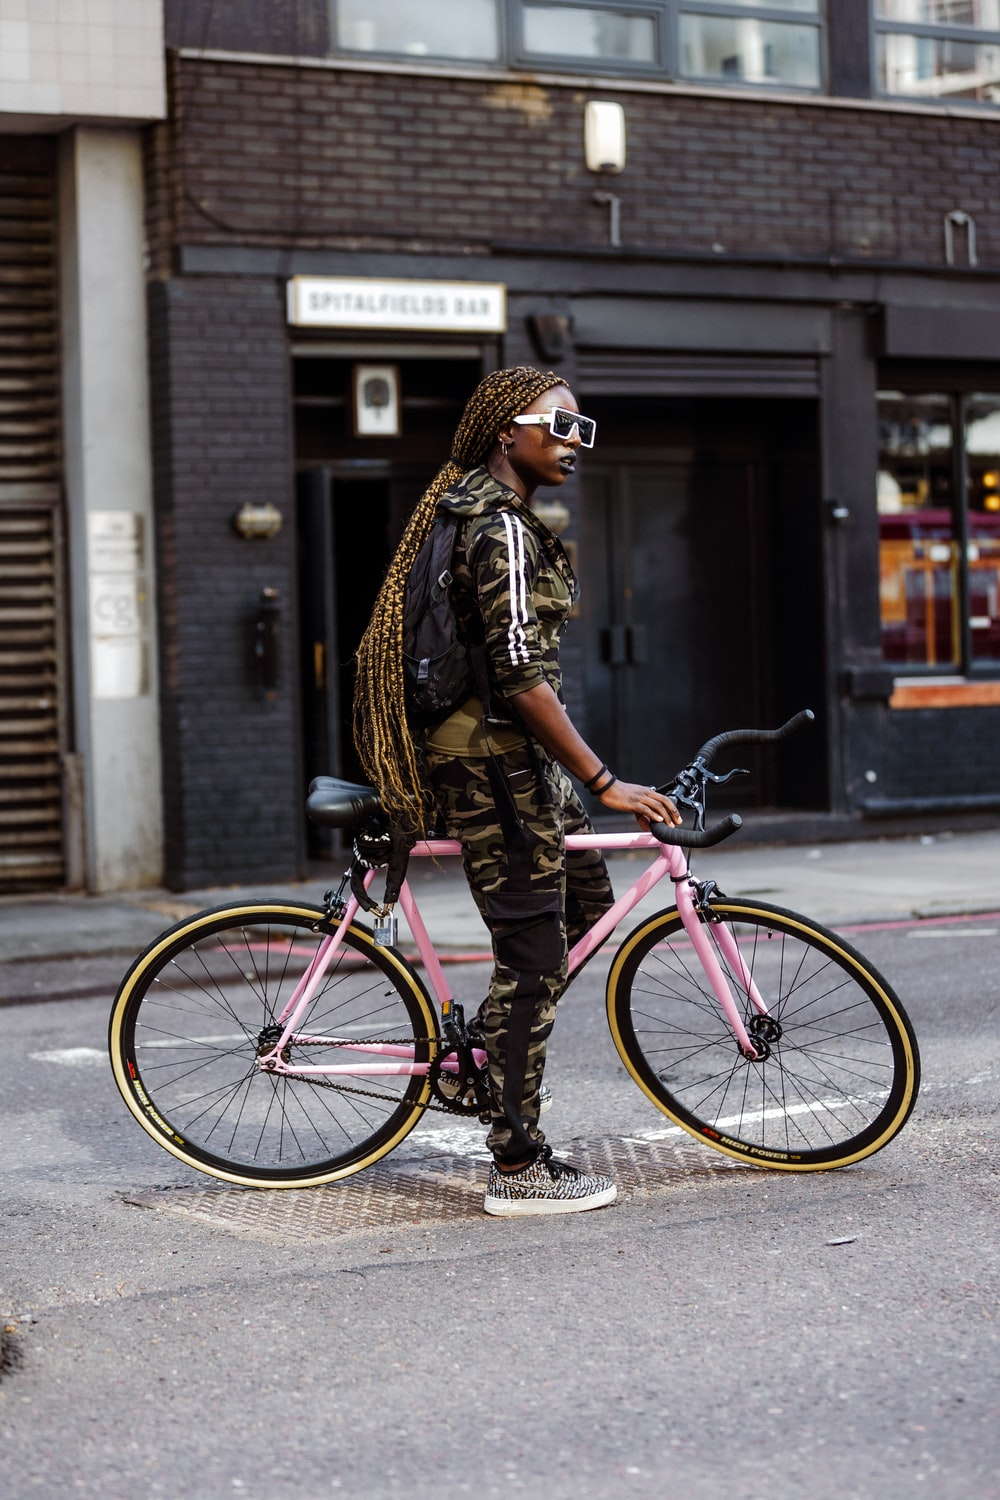 woman in brown and black leopard print jacket and black pants riding pink bicycle